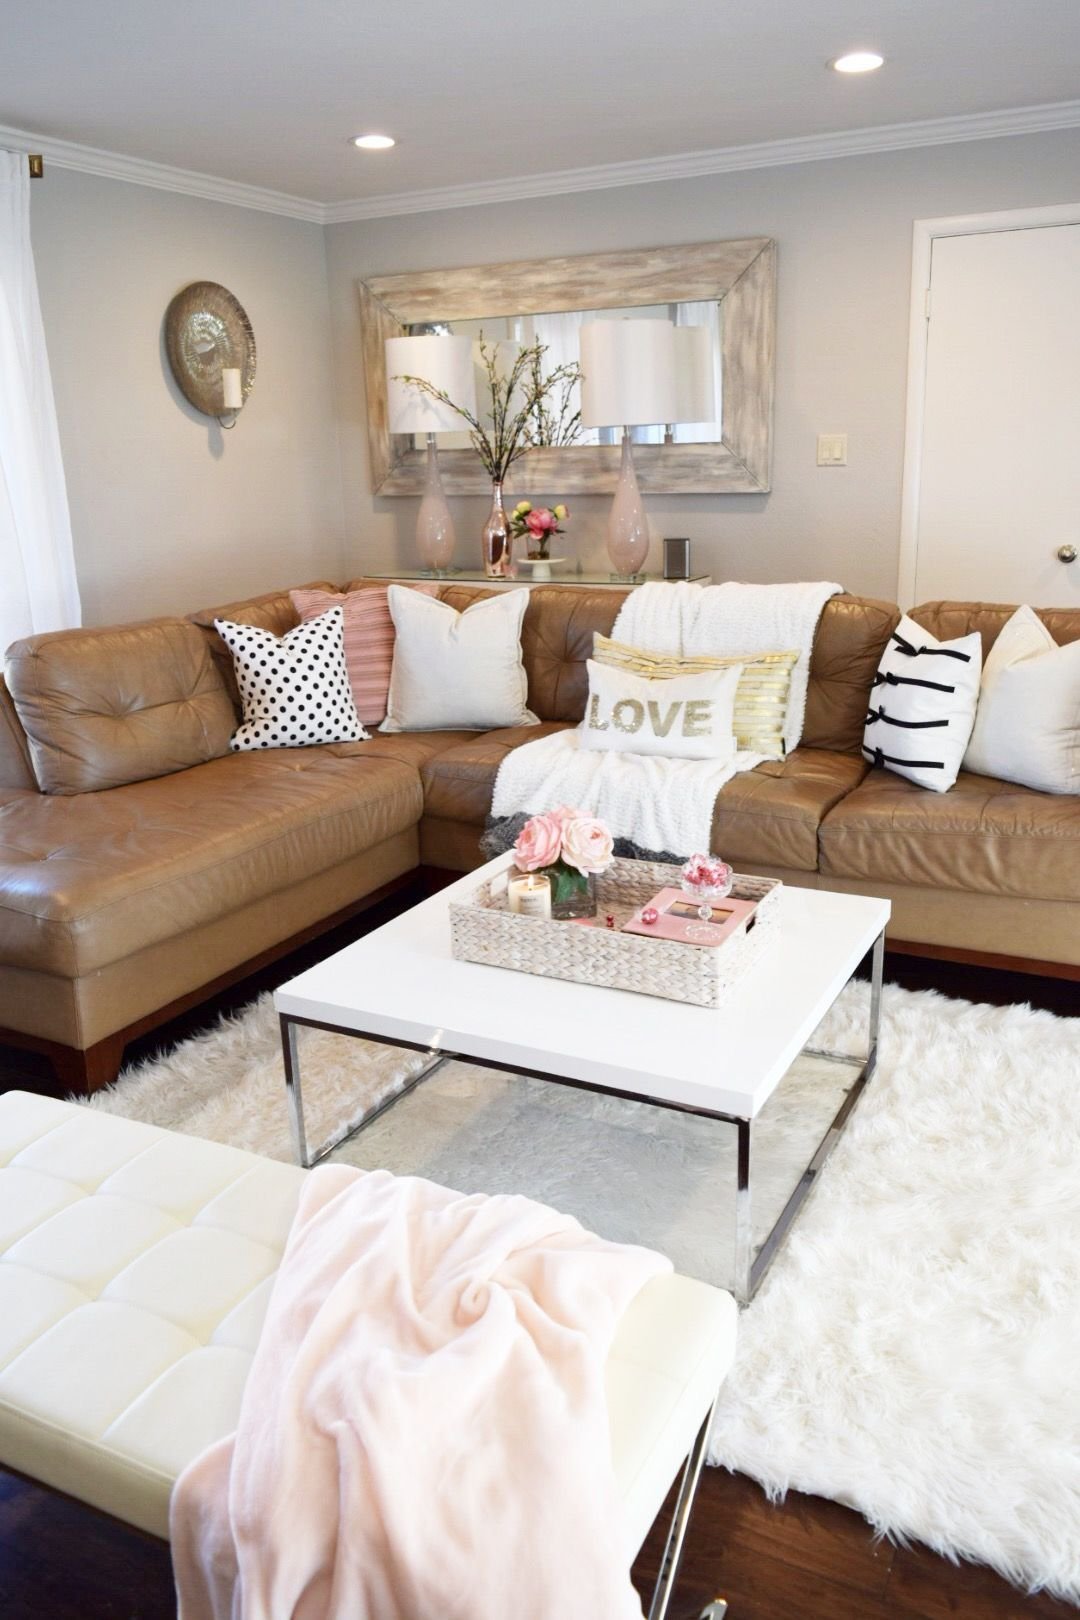 Tan Couch Living Room Tan Couch Decor Couch Decor Tan Couch